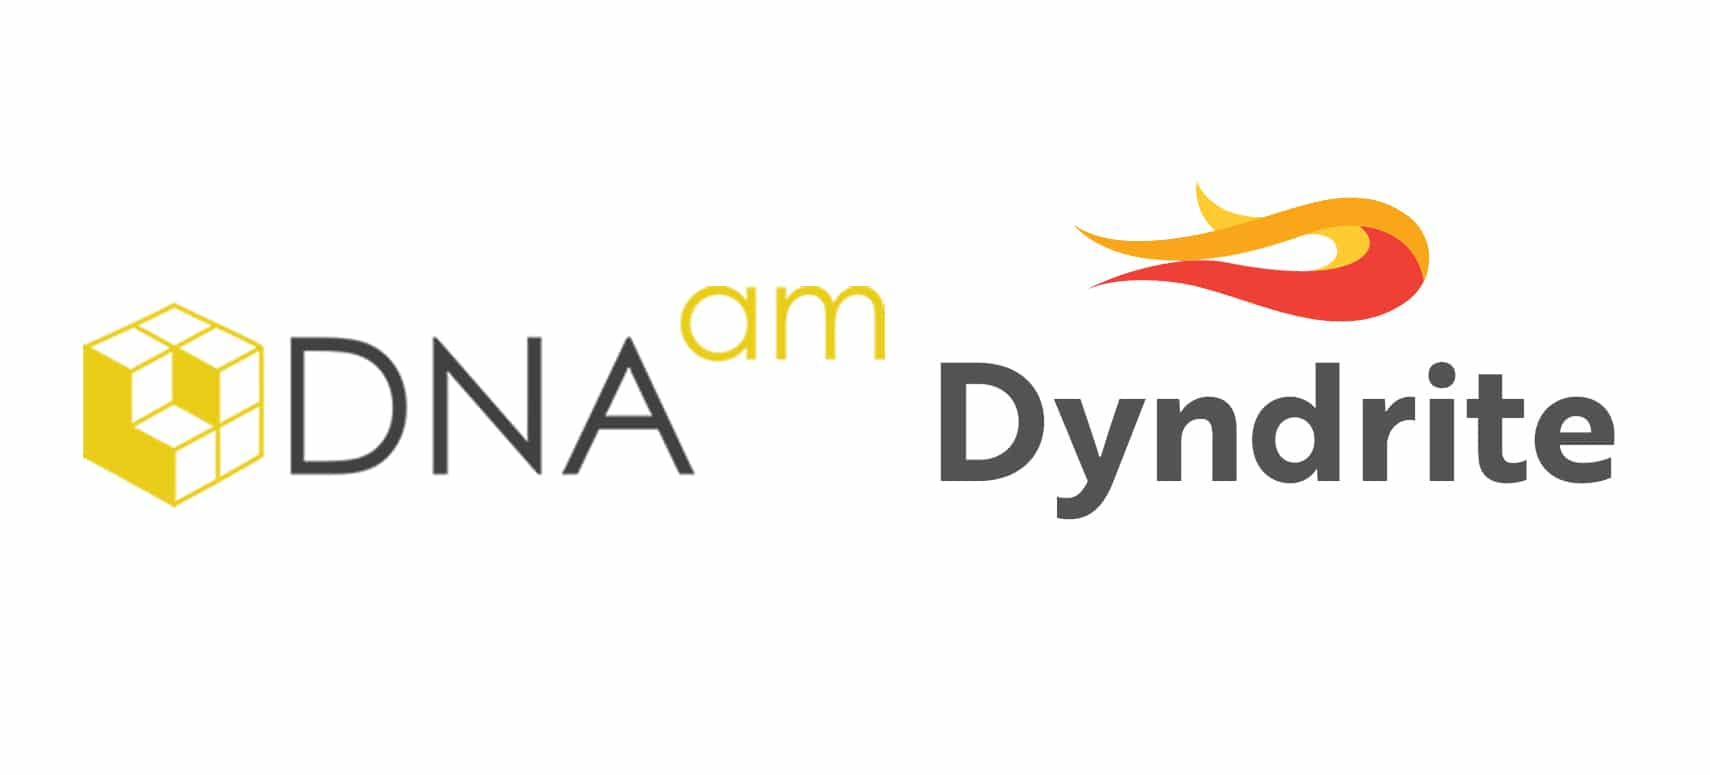 How Dyndrite is advancing printheads, data preparation and mass customization